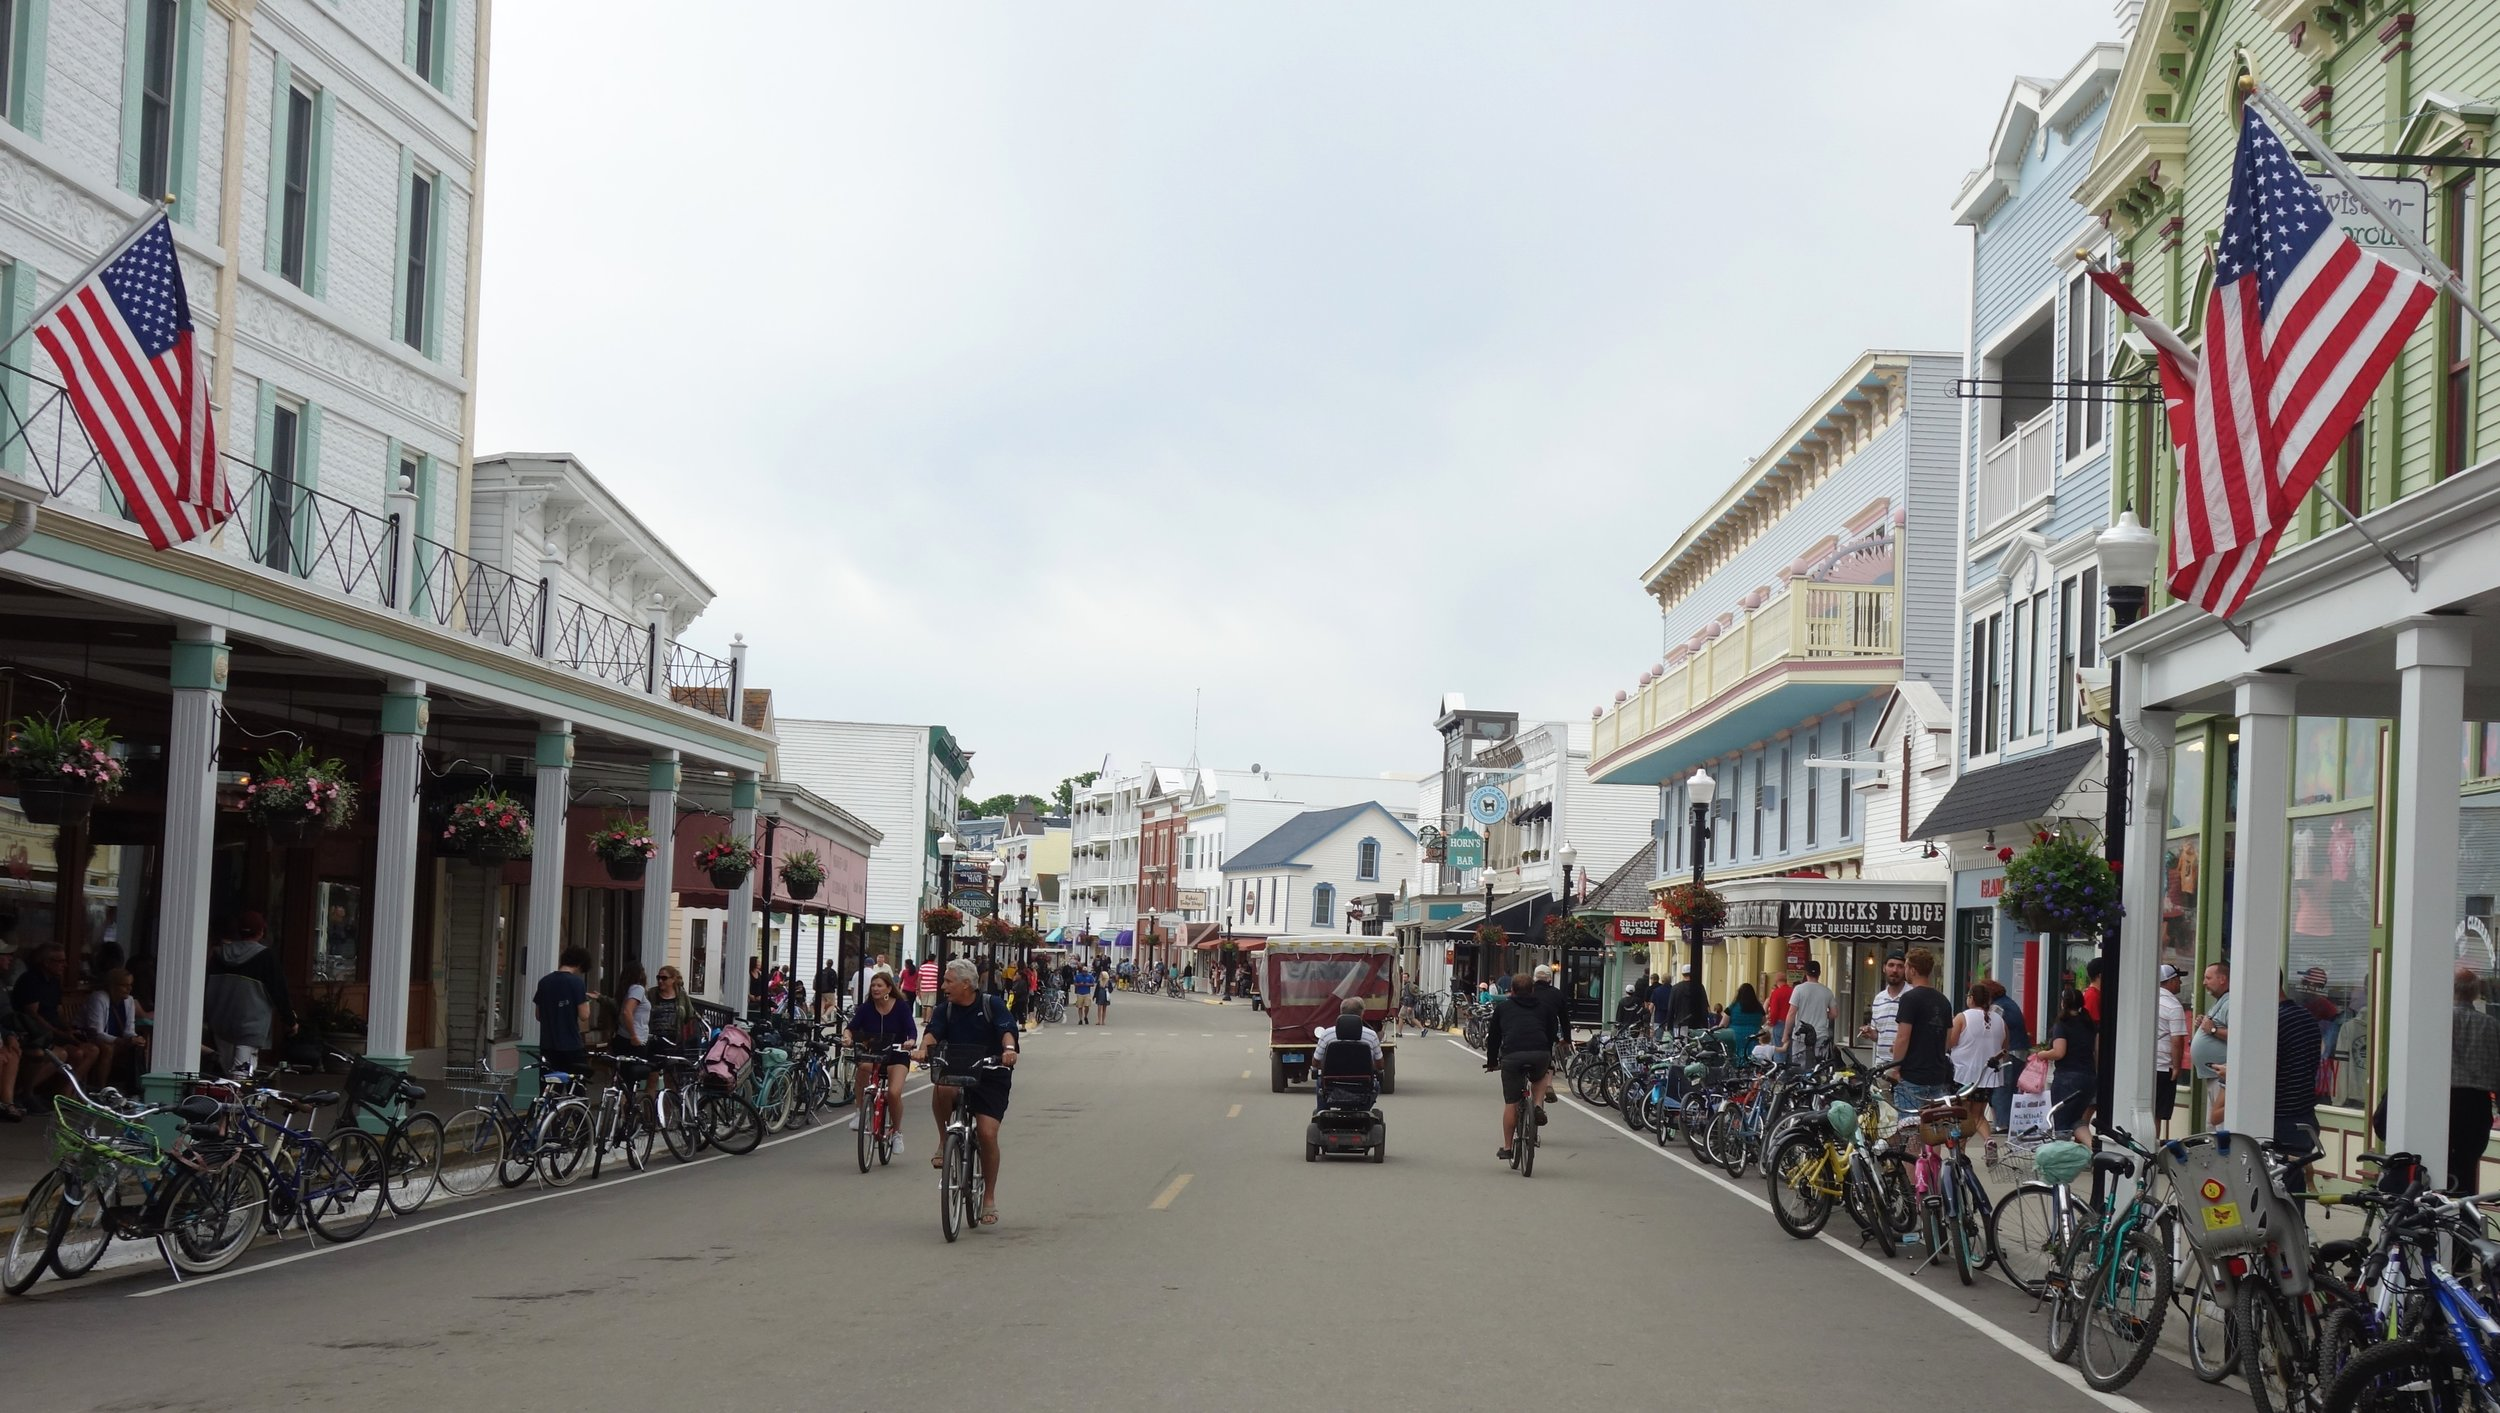 Mackinac Island seemed smaller than my first visit, but I was still impressed by all the bikes.